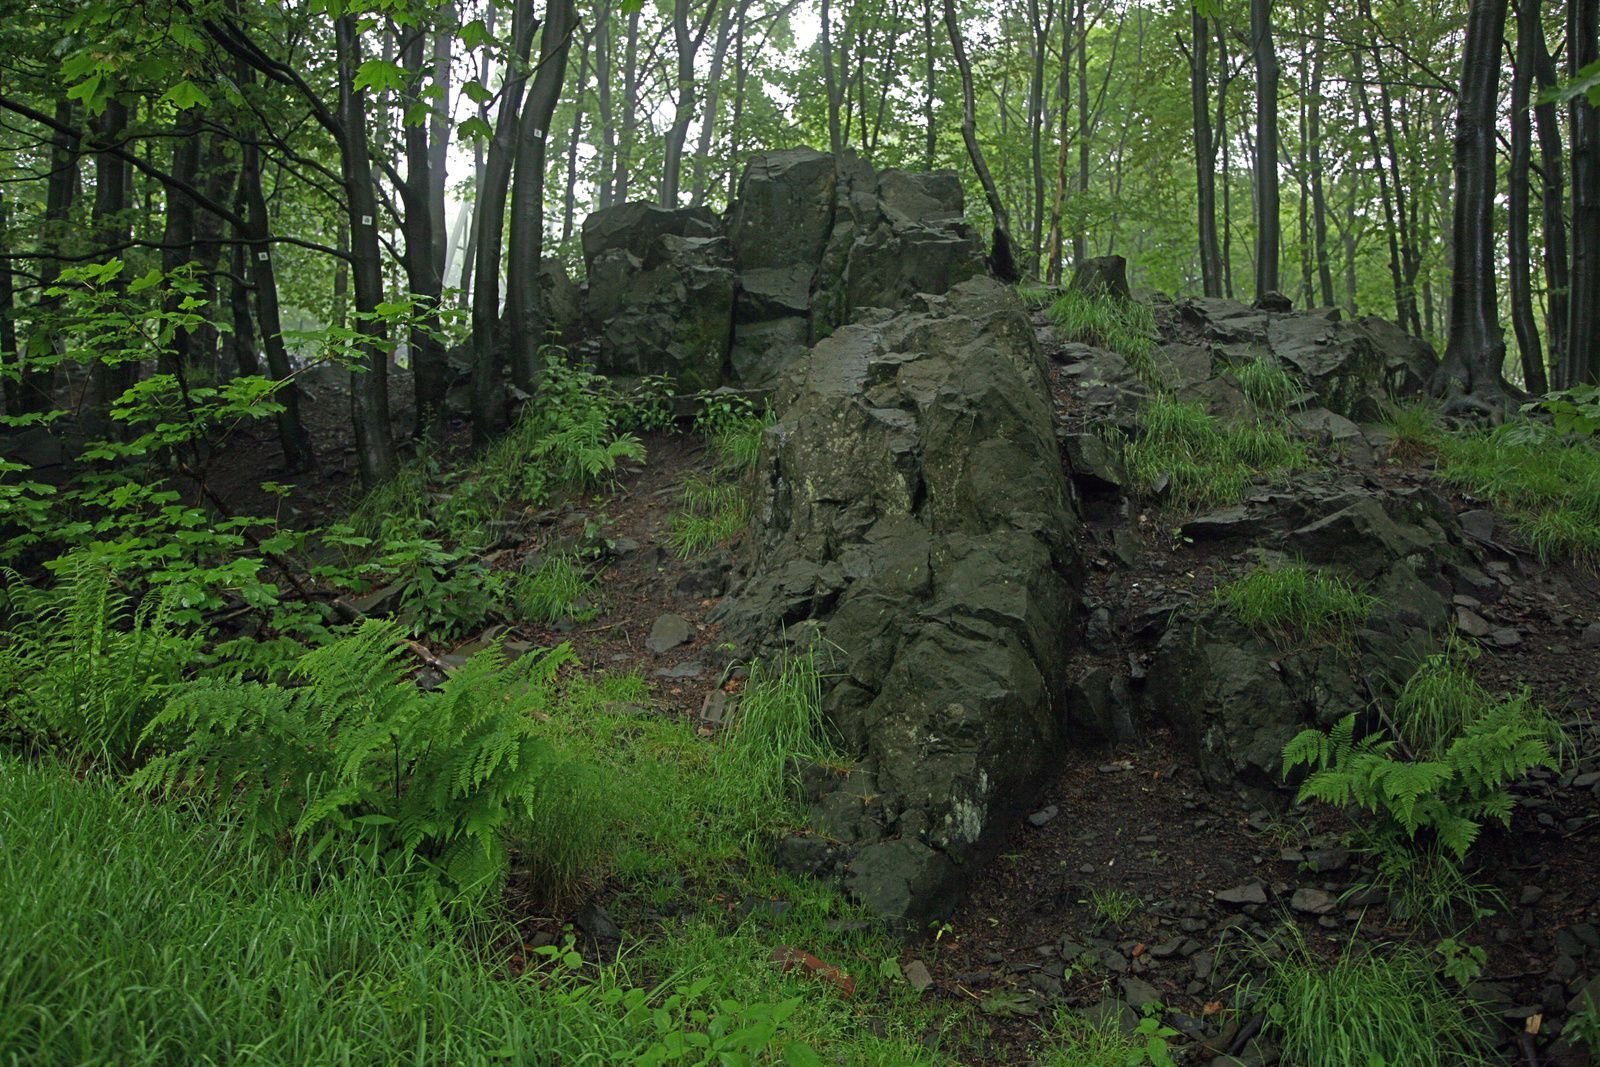 Vogelsberg - basanite outcrop - photo © Bernard Duyck 05.2014